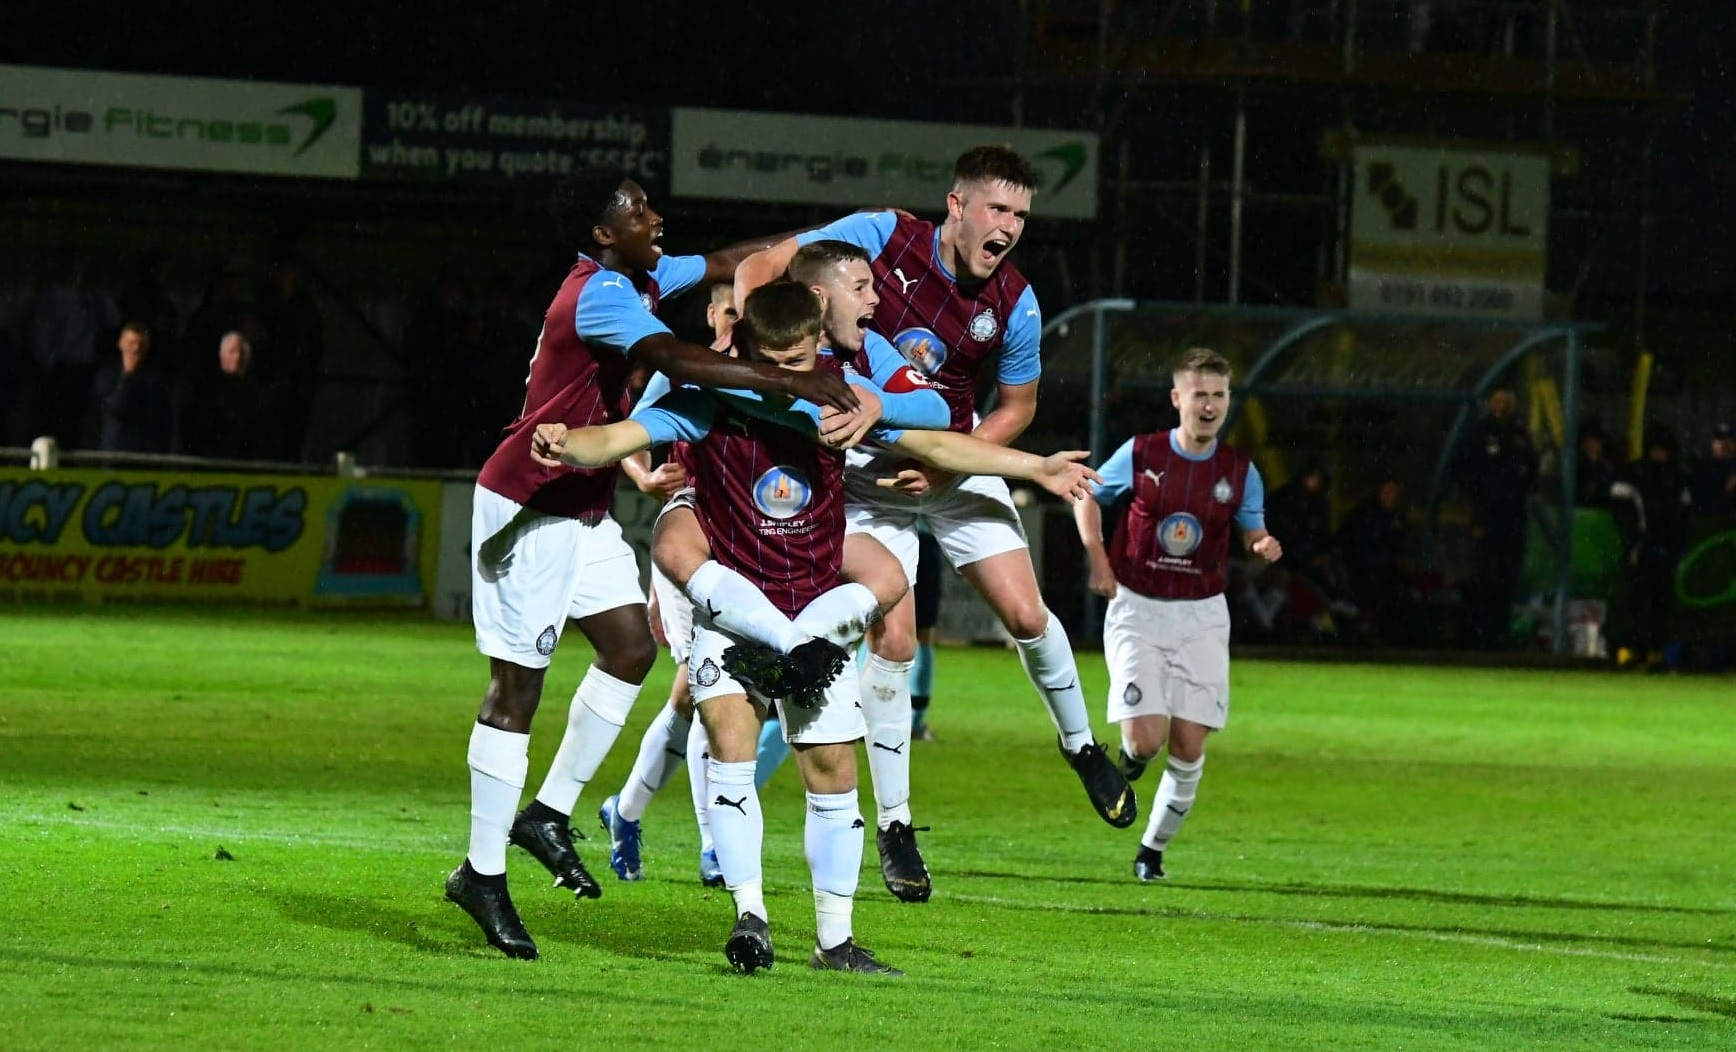 Young Mariners progress in Youth Cup with impressive derby win